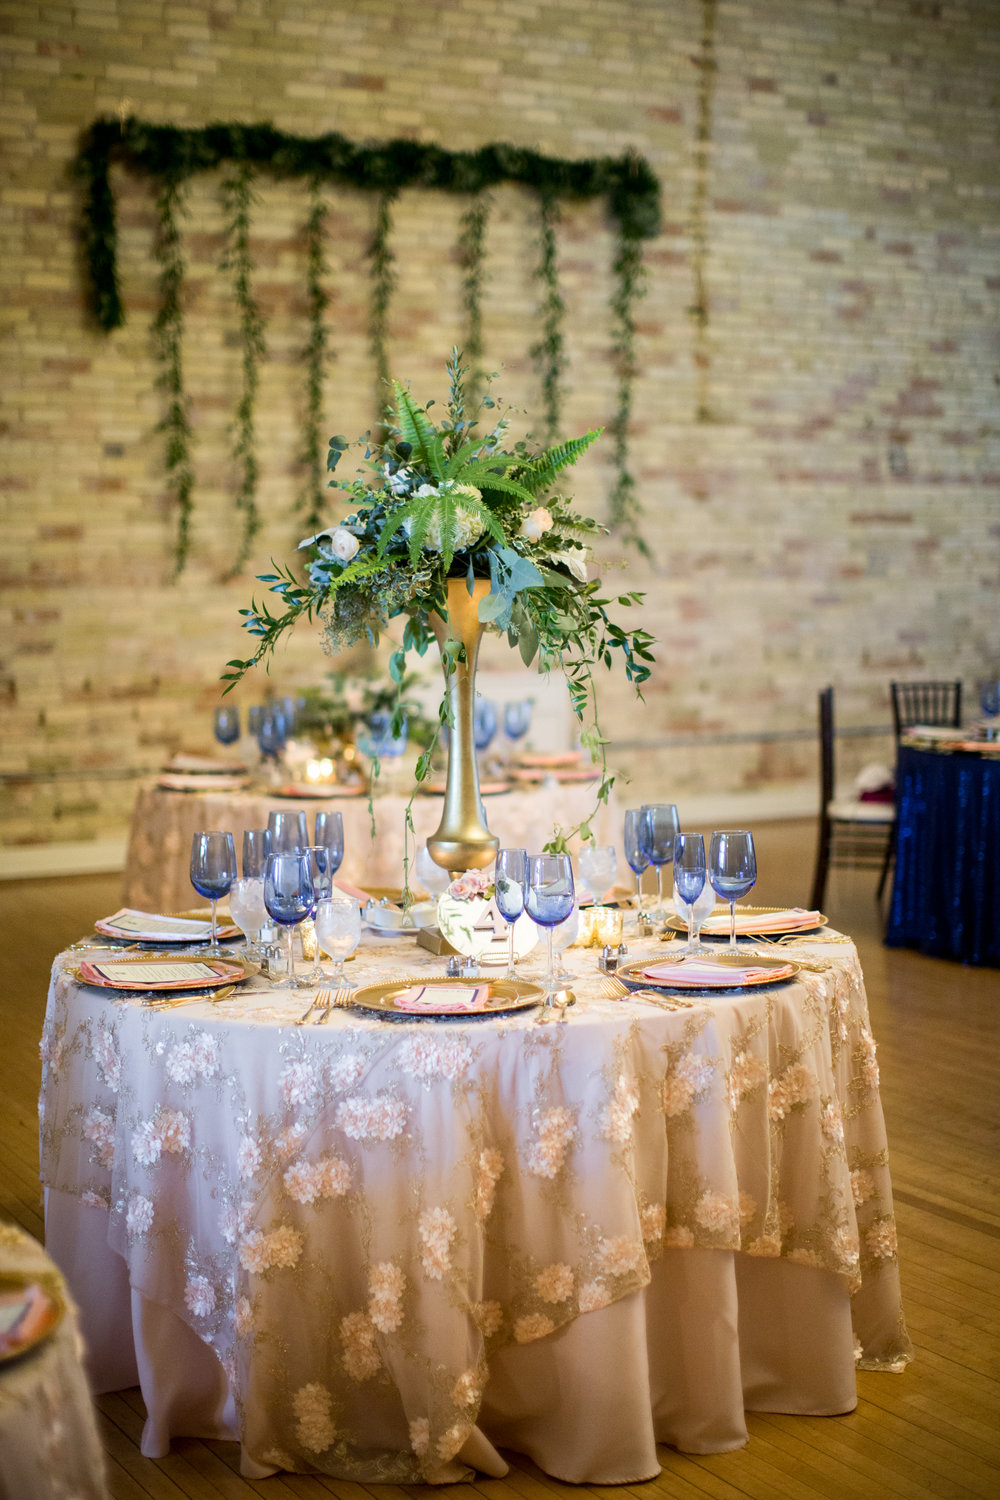 tablescape during wedding day at century club ballroom